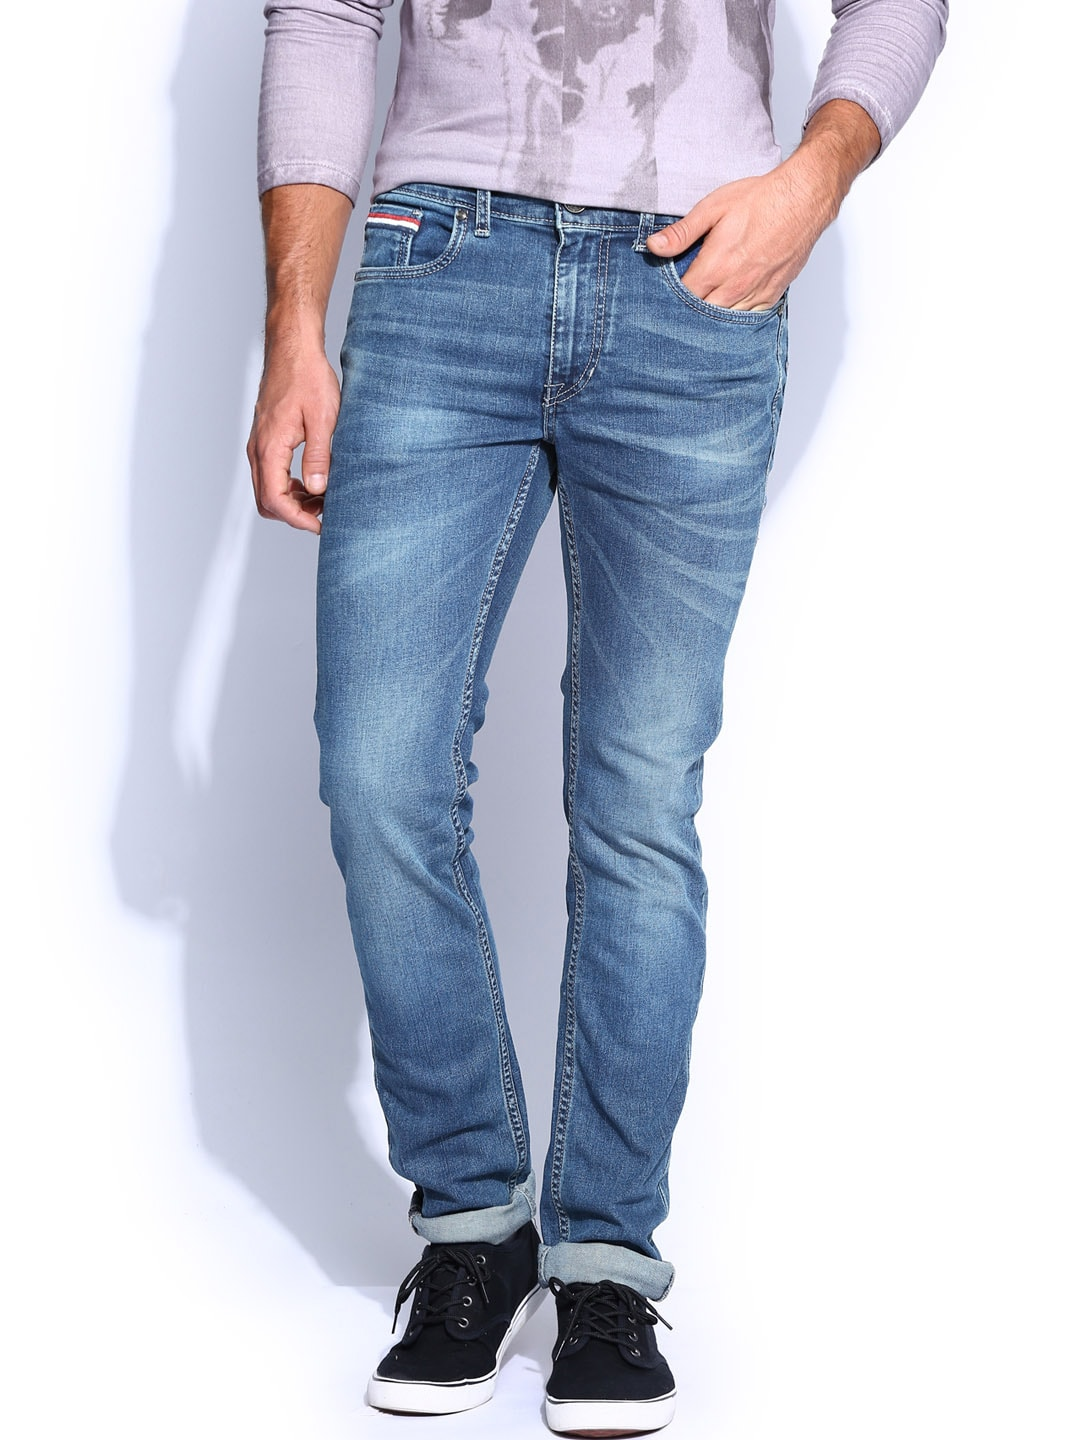 eda6bc51 U.s. Polo Assn. Denim Co. Kids Jeans Jackets - Buy U.s. Polo Assn. Denim  Co. Kids Jeans Jackets online in India